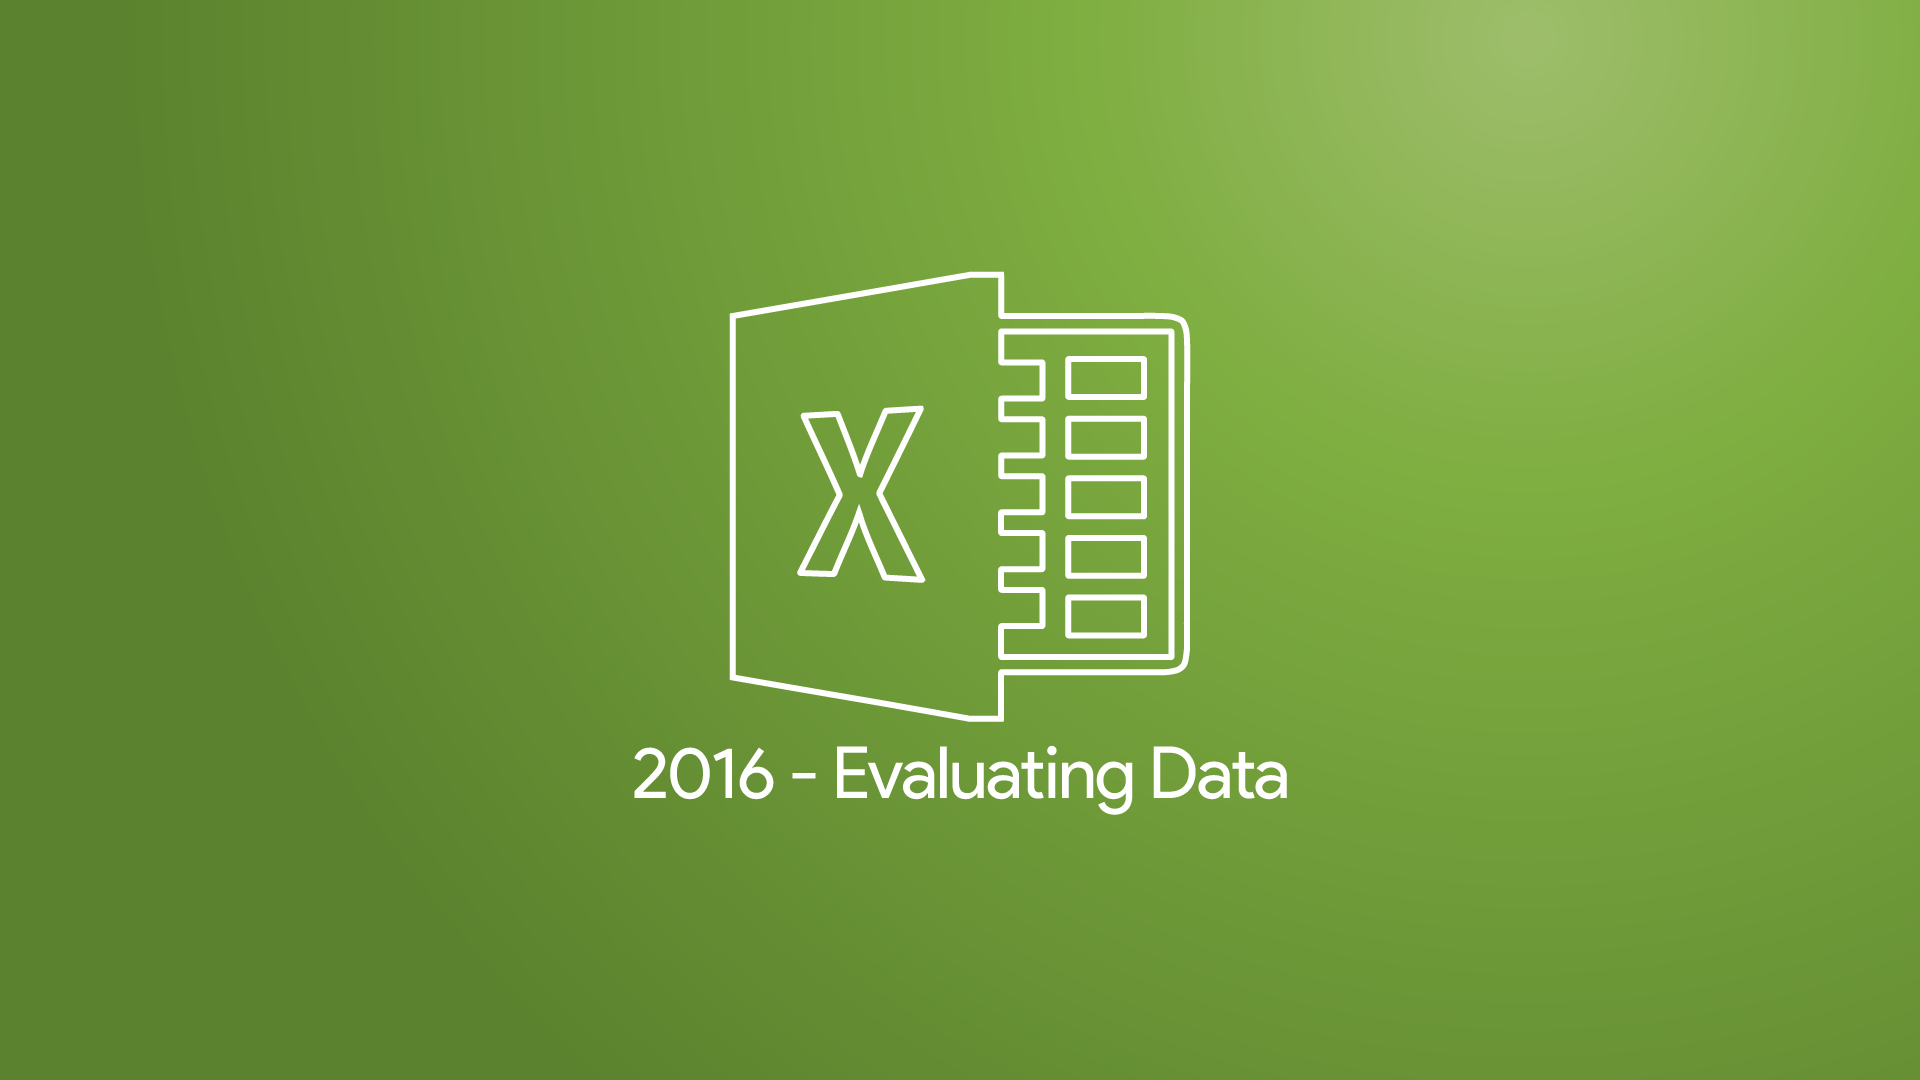 Excel 2016 - Evaluating Data